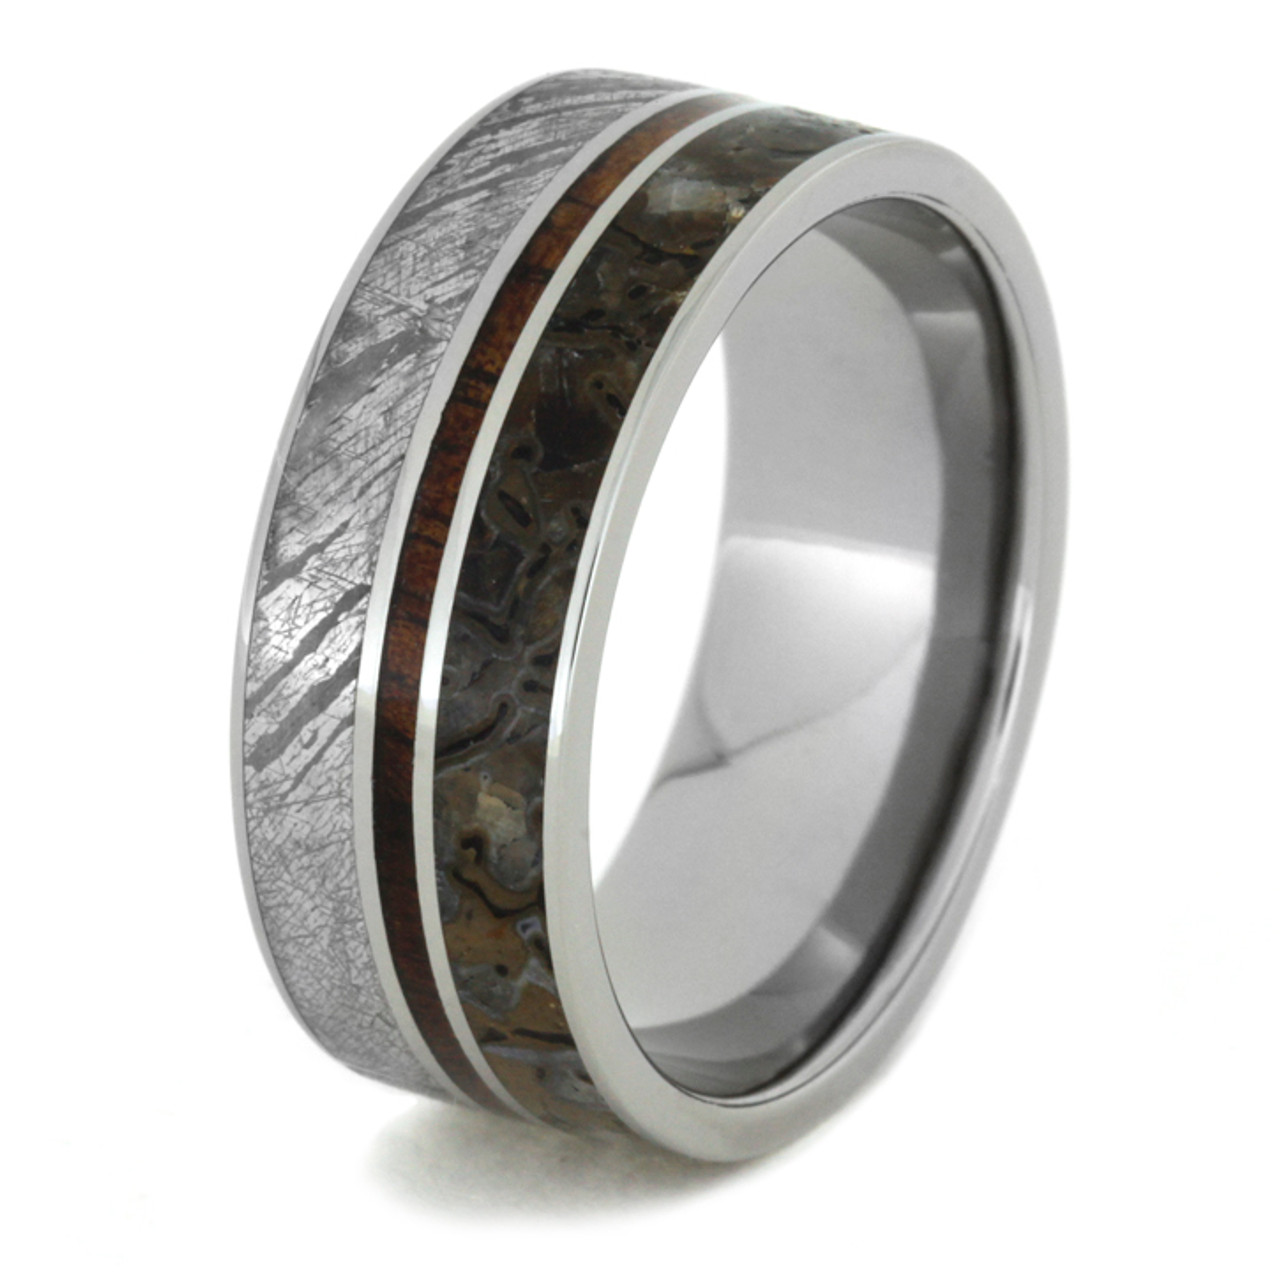 johan re wedding men by yellow rings meteorite imagined jewelry collections bone s and band dinosaur gold ring